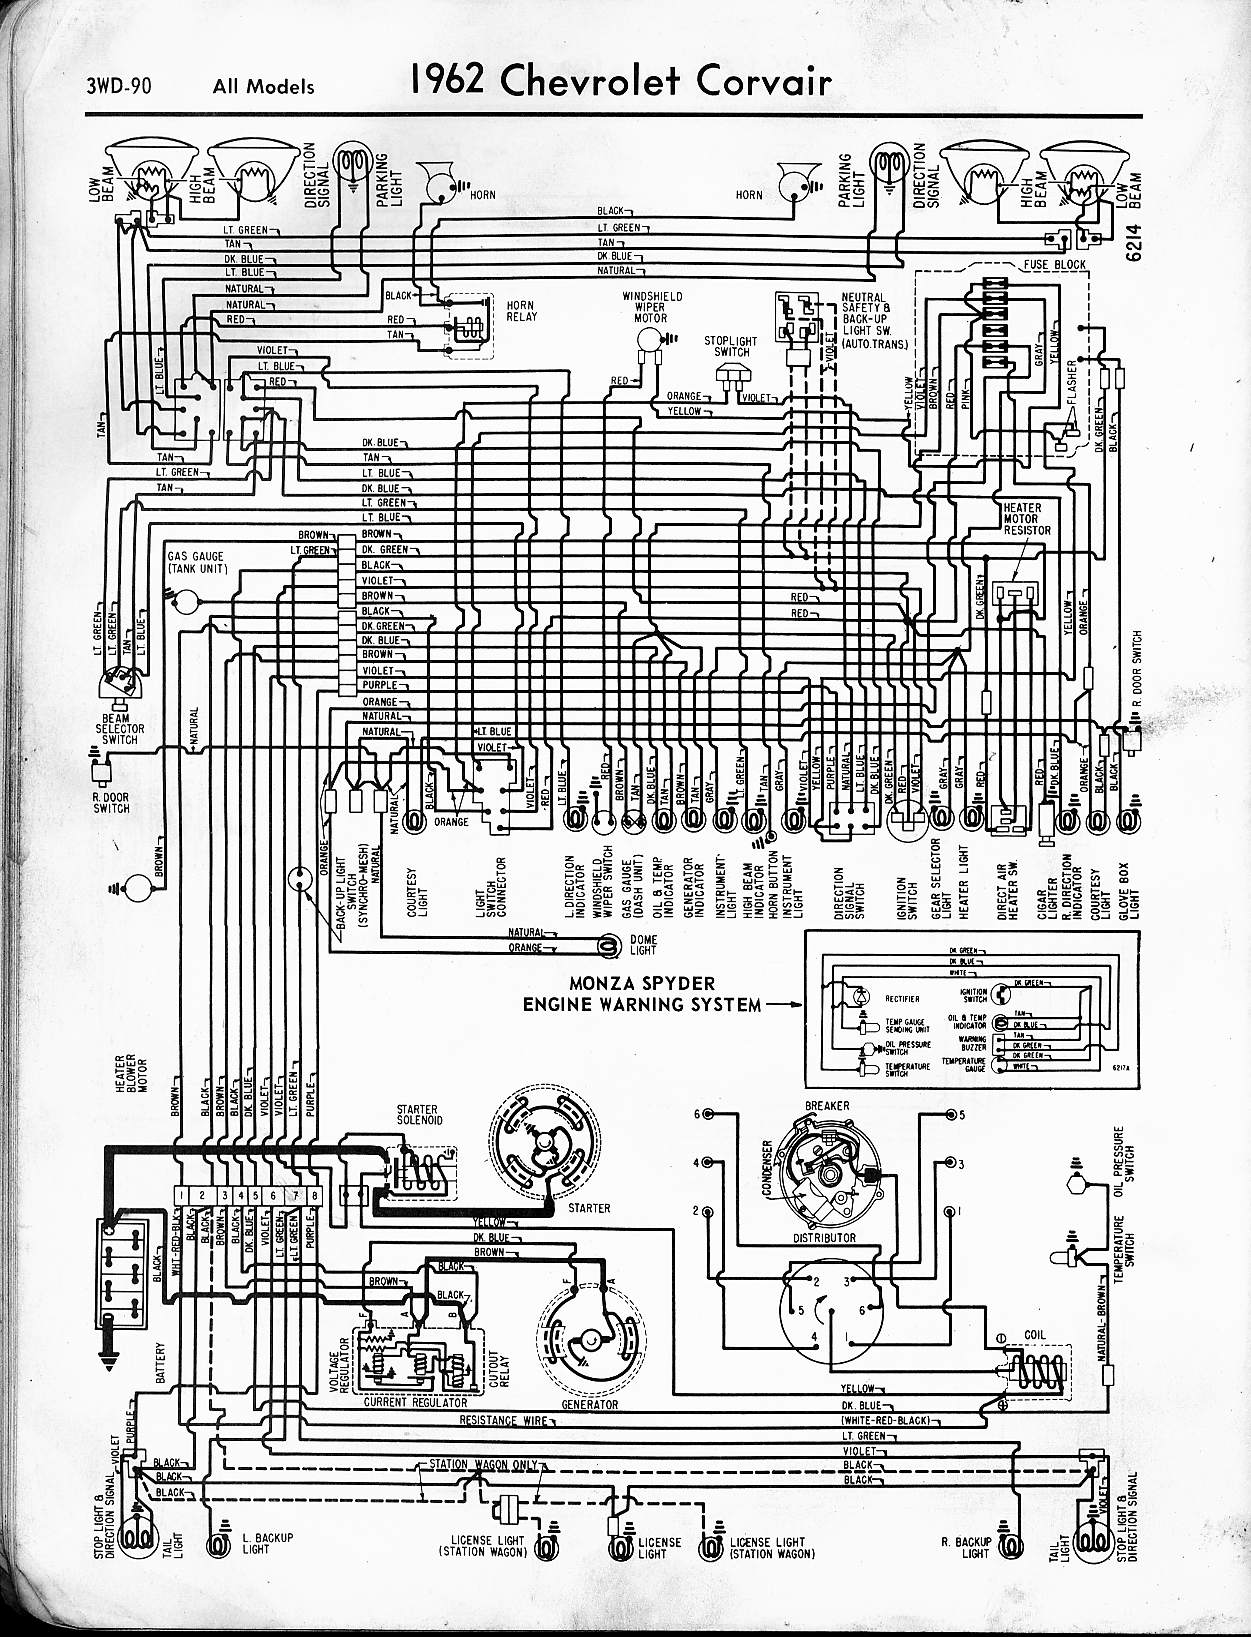 hight resolution of 1965 corvair wiring diagram wiring diagram blog 1965 corvair wiring diagram wiring diagram user 1965 corvair